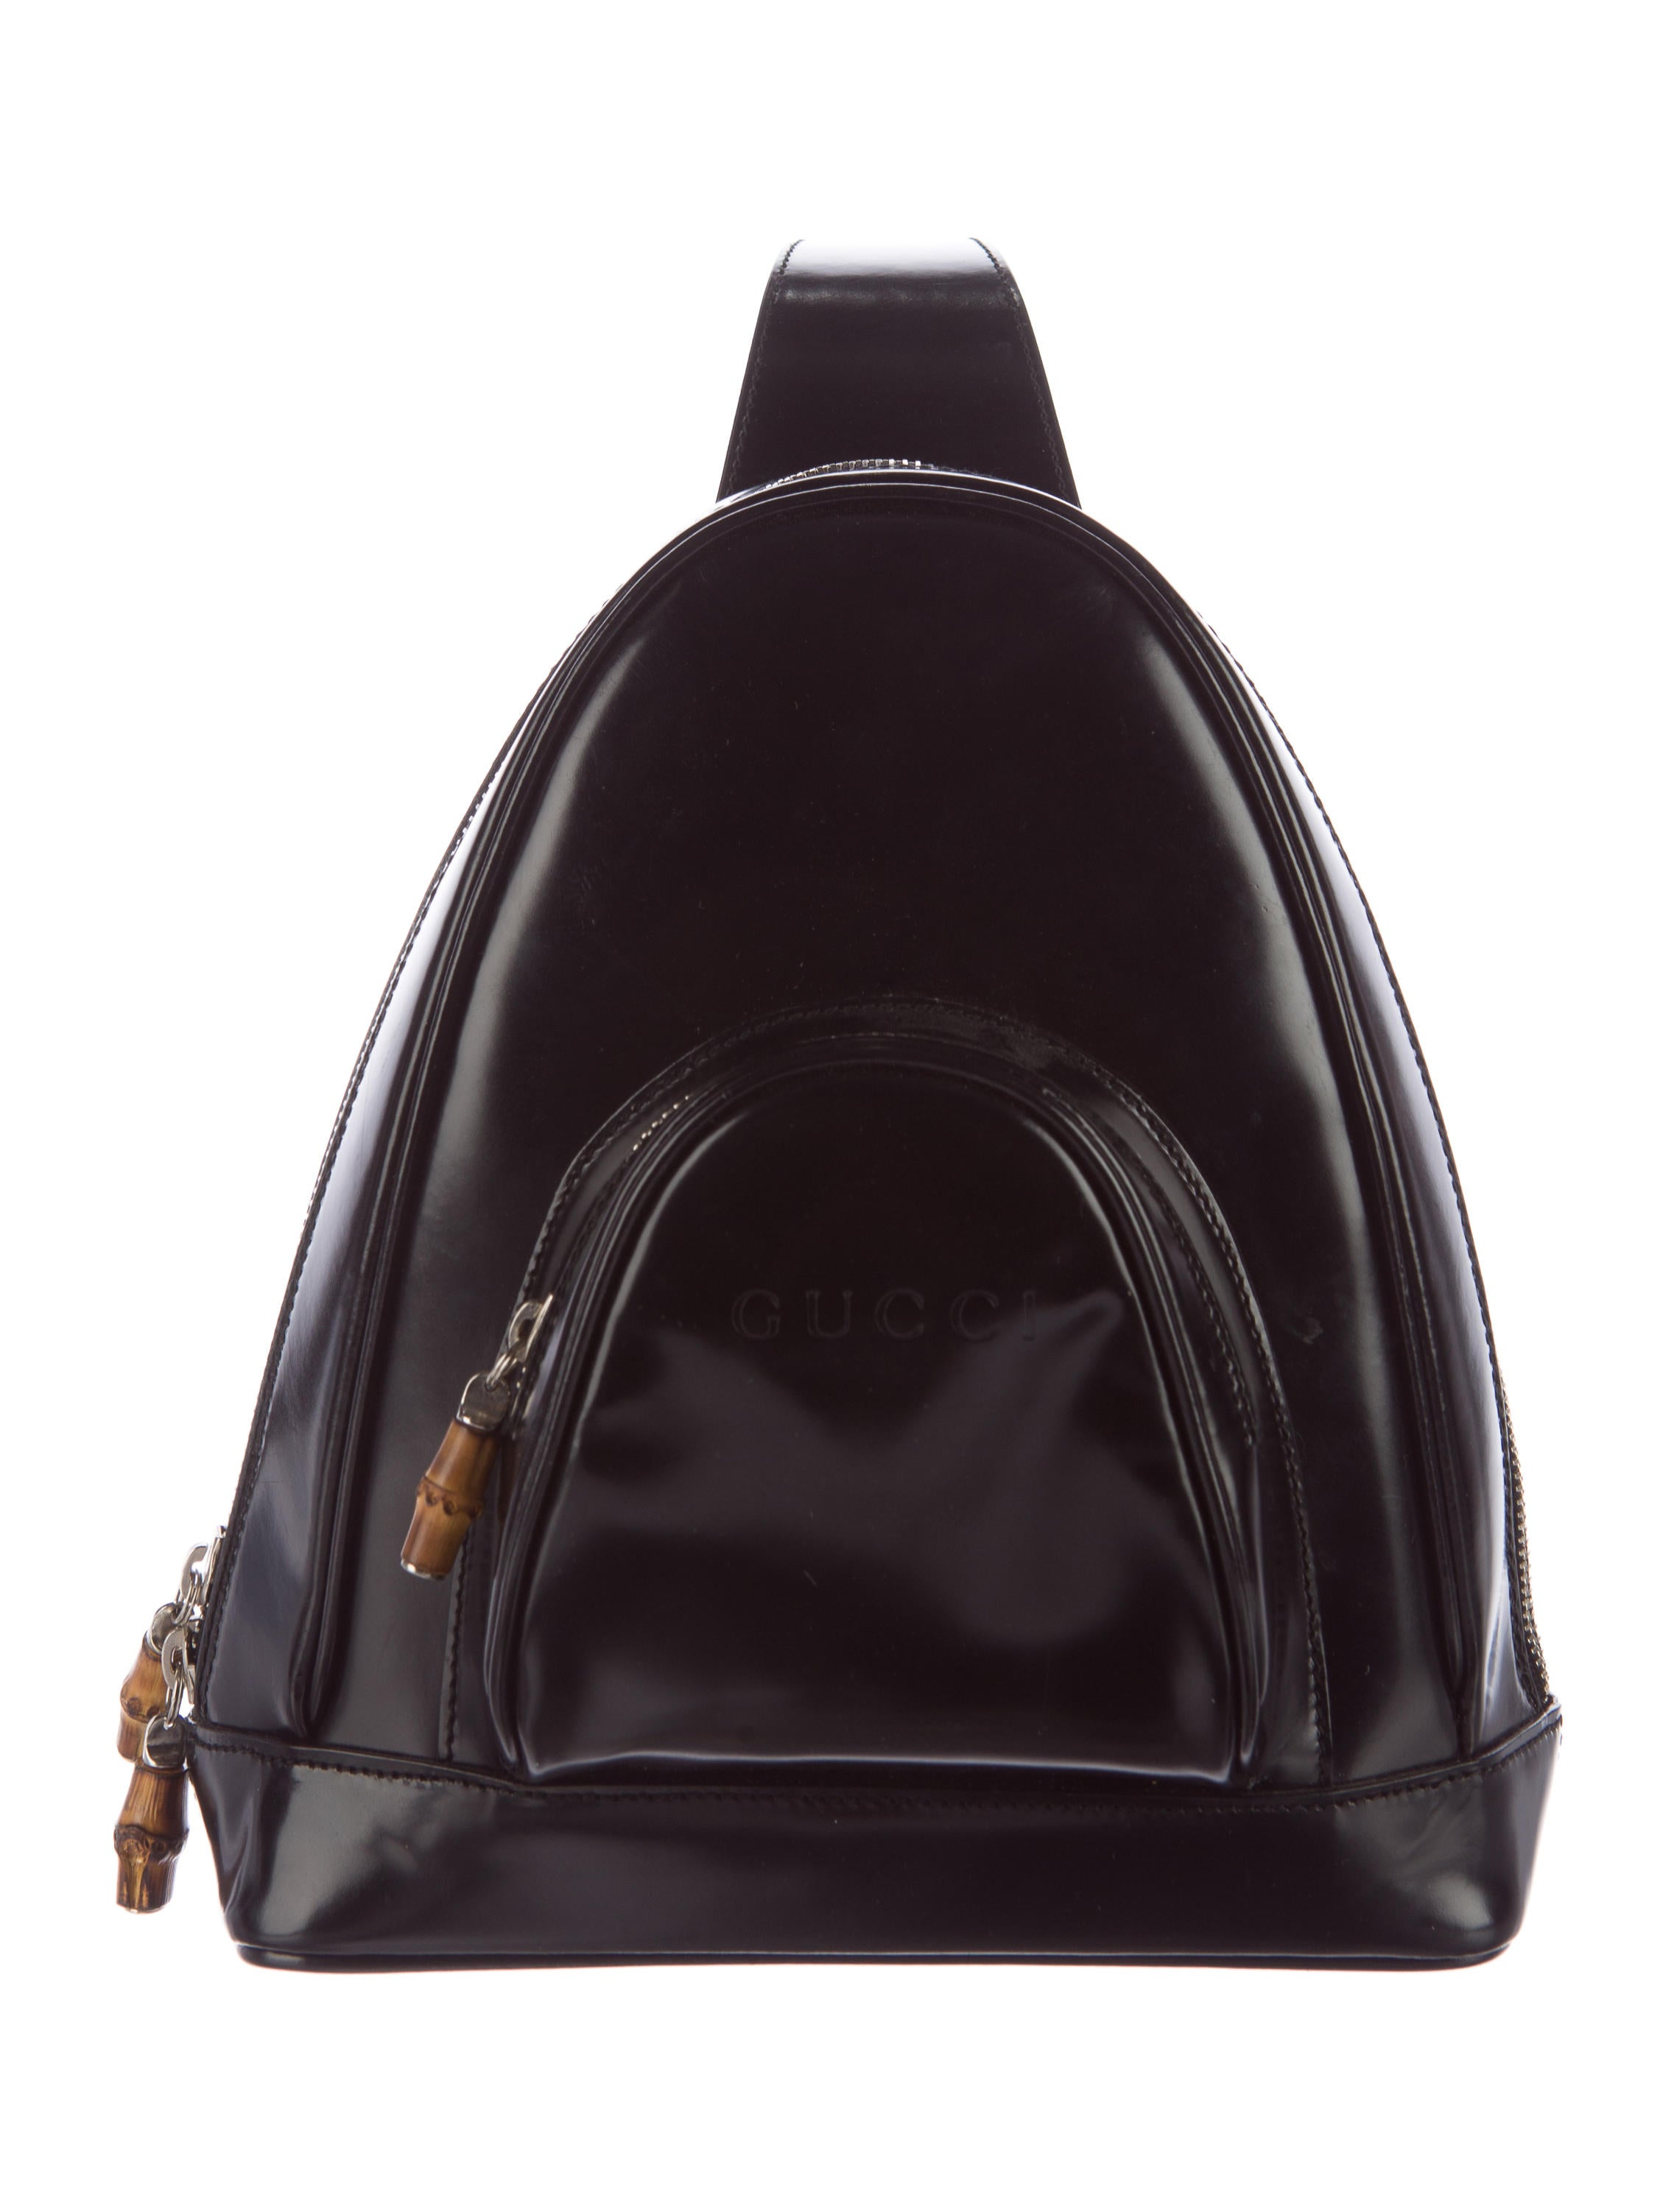 Amazing Gucci Sling Bags For Women | Www.pixshark.com - Images Galleries With A Bite!